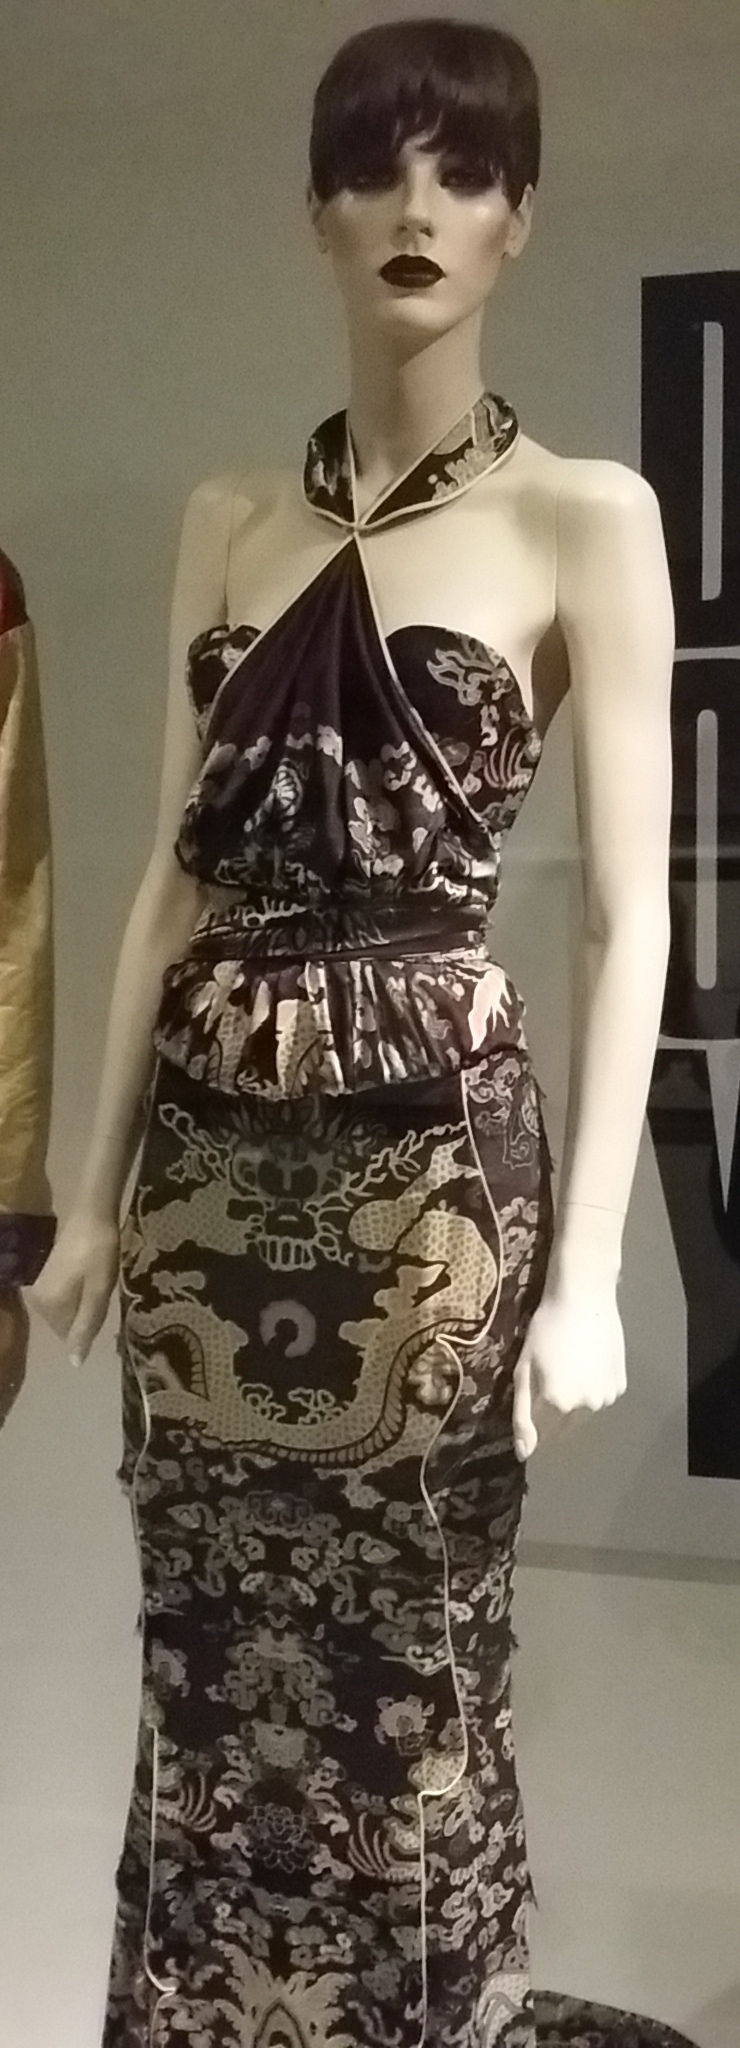 file evening dress in chinese dragon print satin by tom ford for yves saint laurent rive gauche. Black Bedroom Furniture Sets. Home Design Ideas